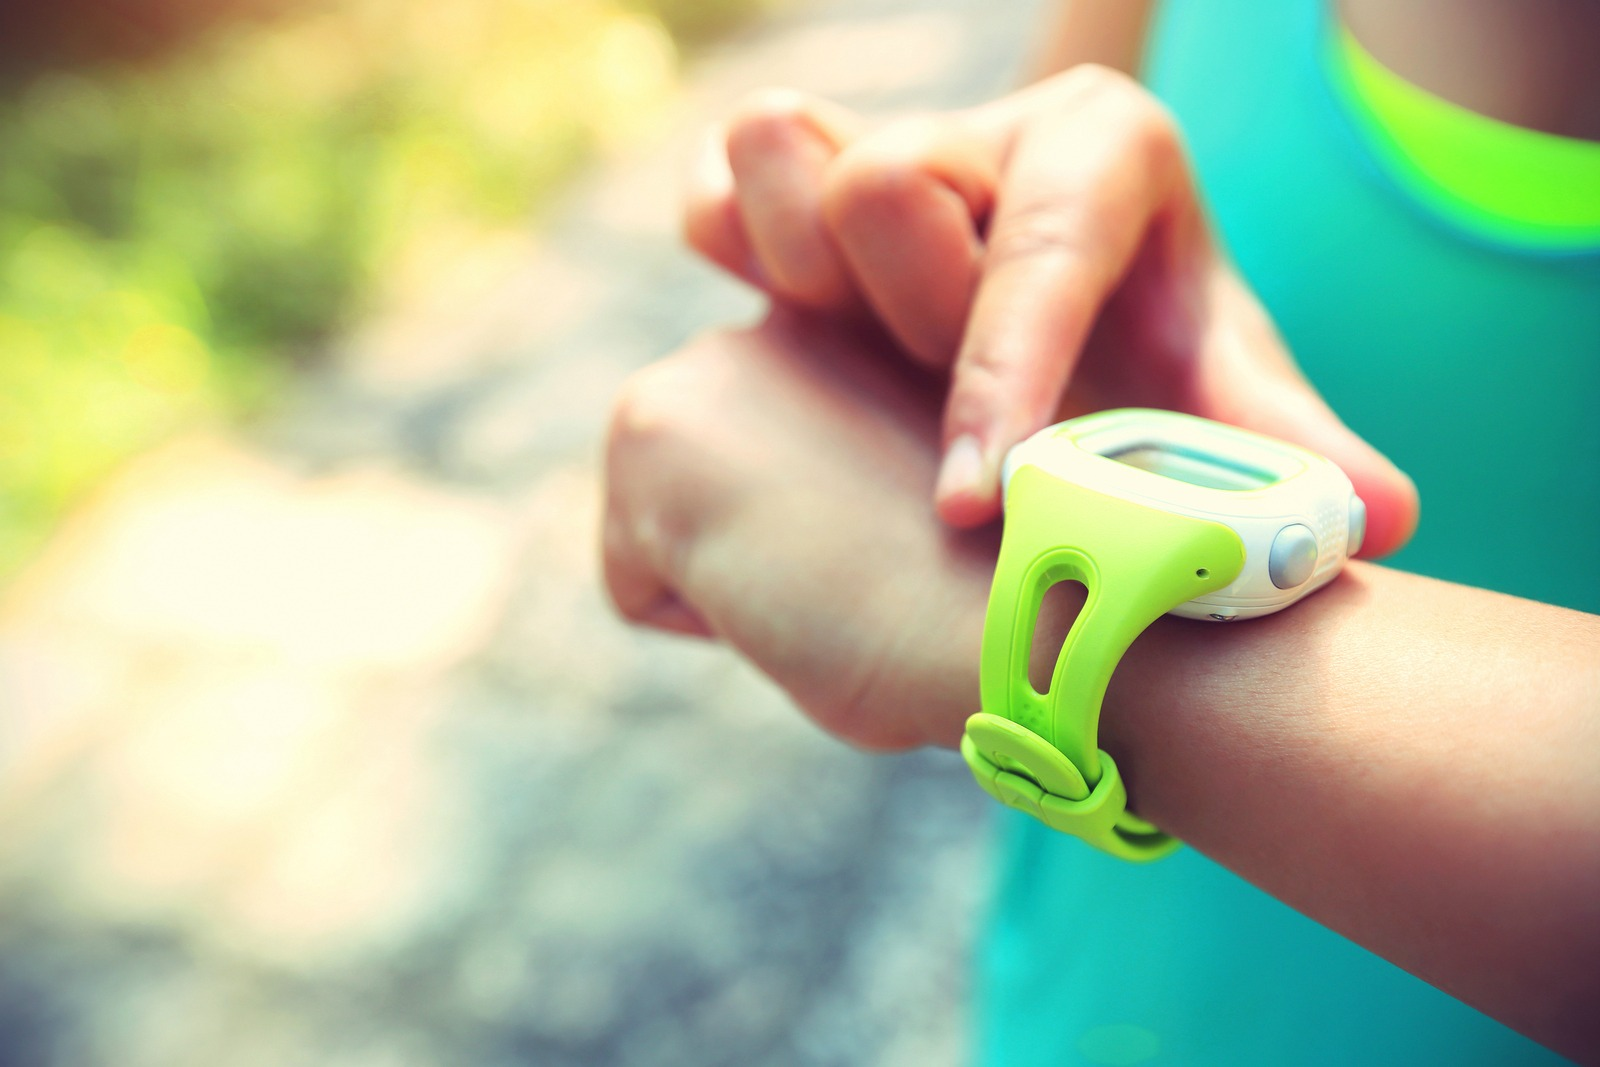 Improve your fitness and running using tailored running apps